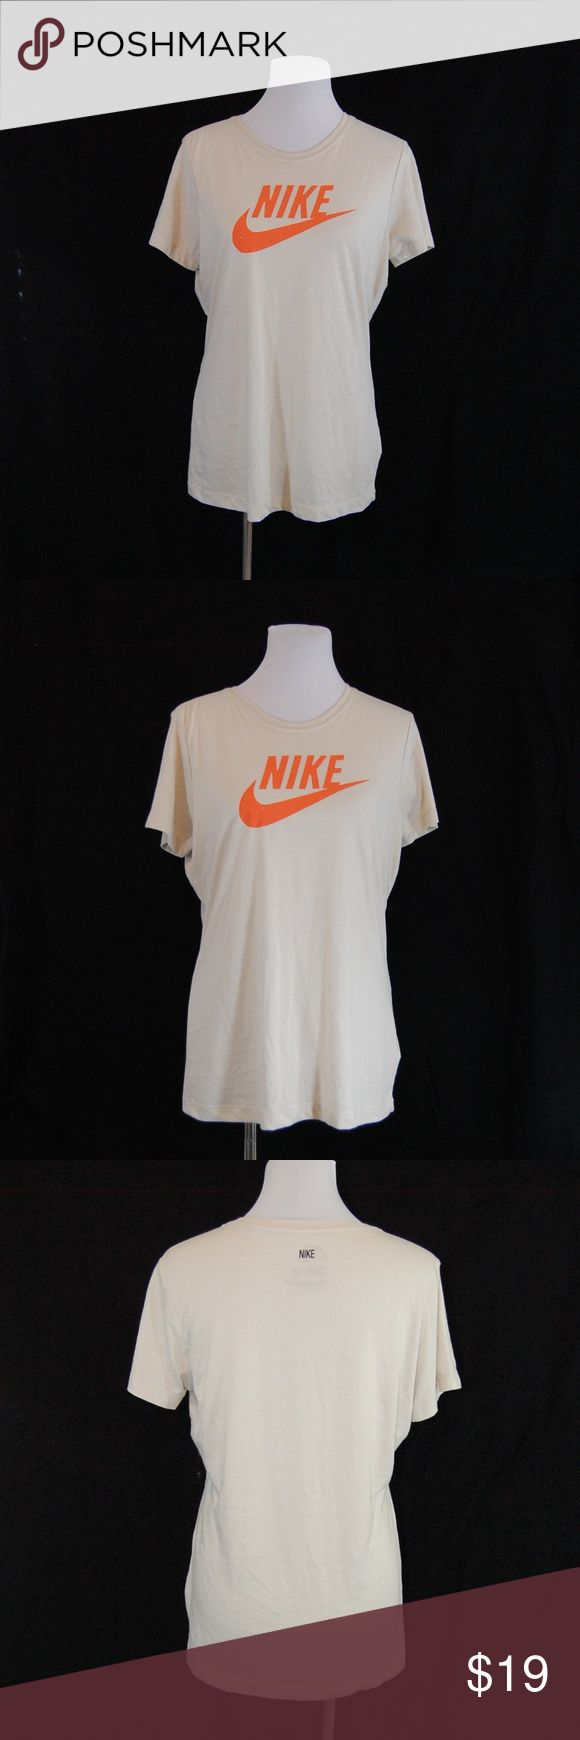 "NWT: Nike Slim Fit Logo Shirt (non-sale price $19)  Cream / beige colored crew neck tee with orange Nike & Swoosh logo on front. Small ""Nike"" at back of neck.  Slim fit.  Lightweight and very soft. A great tee for working out or with jeans and sneakers to run errands.  Brand new with tags. Nike Tops Tees - Short Sleeve"